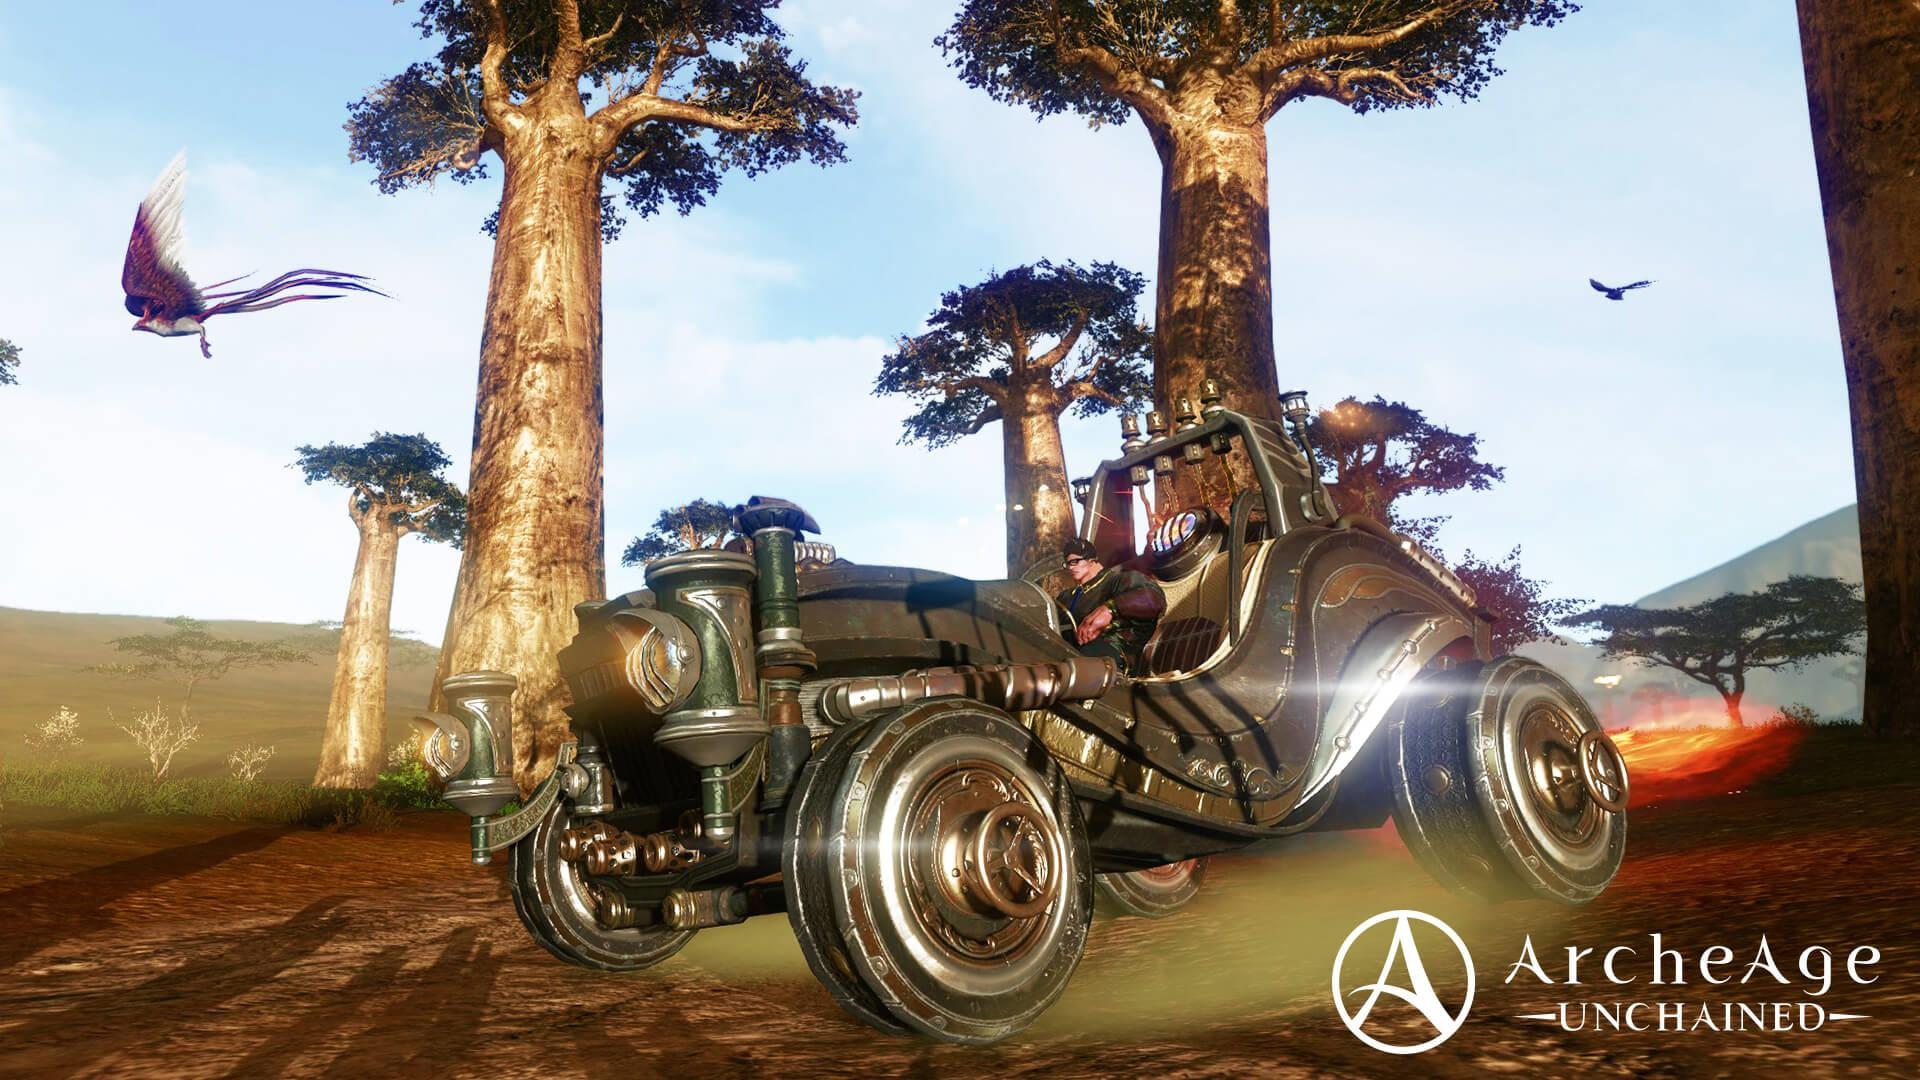 ArcheAge: Unchained Gamigo announces new for-purchase version